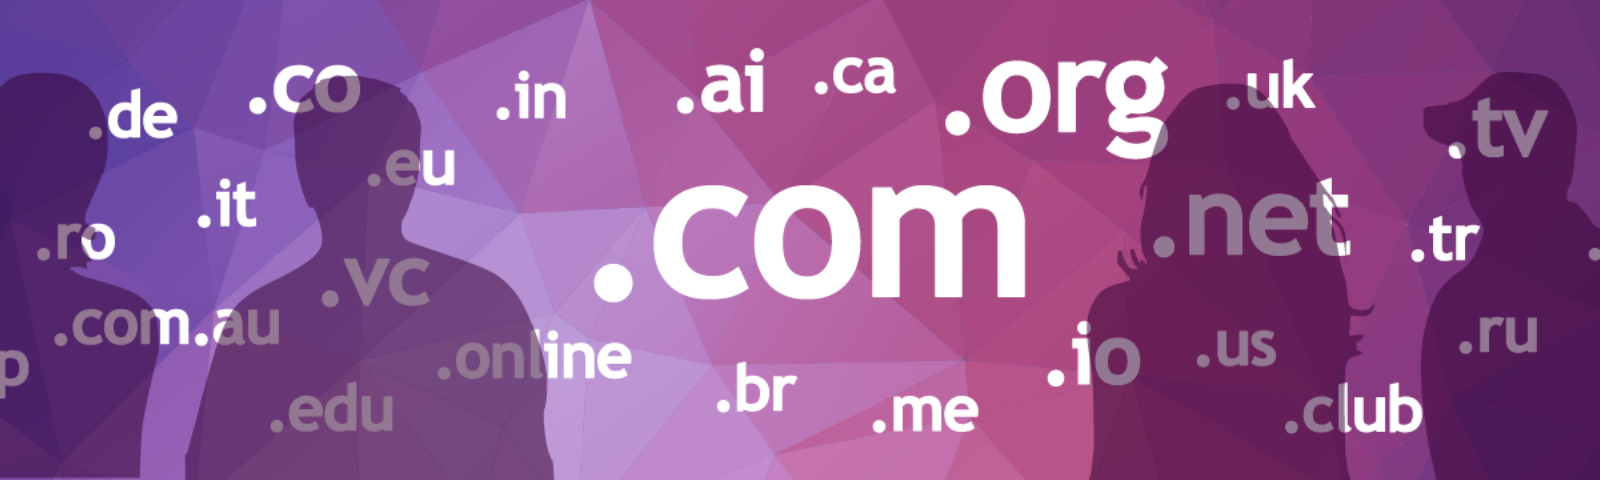 Domainers—Who is a Domainer?